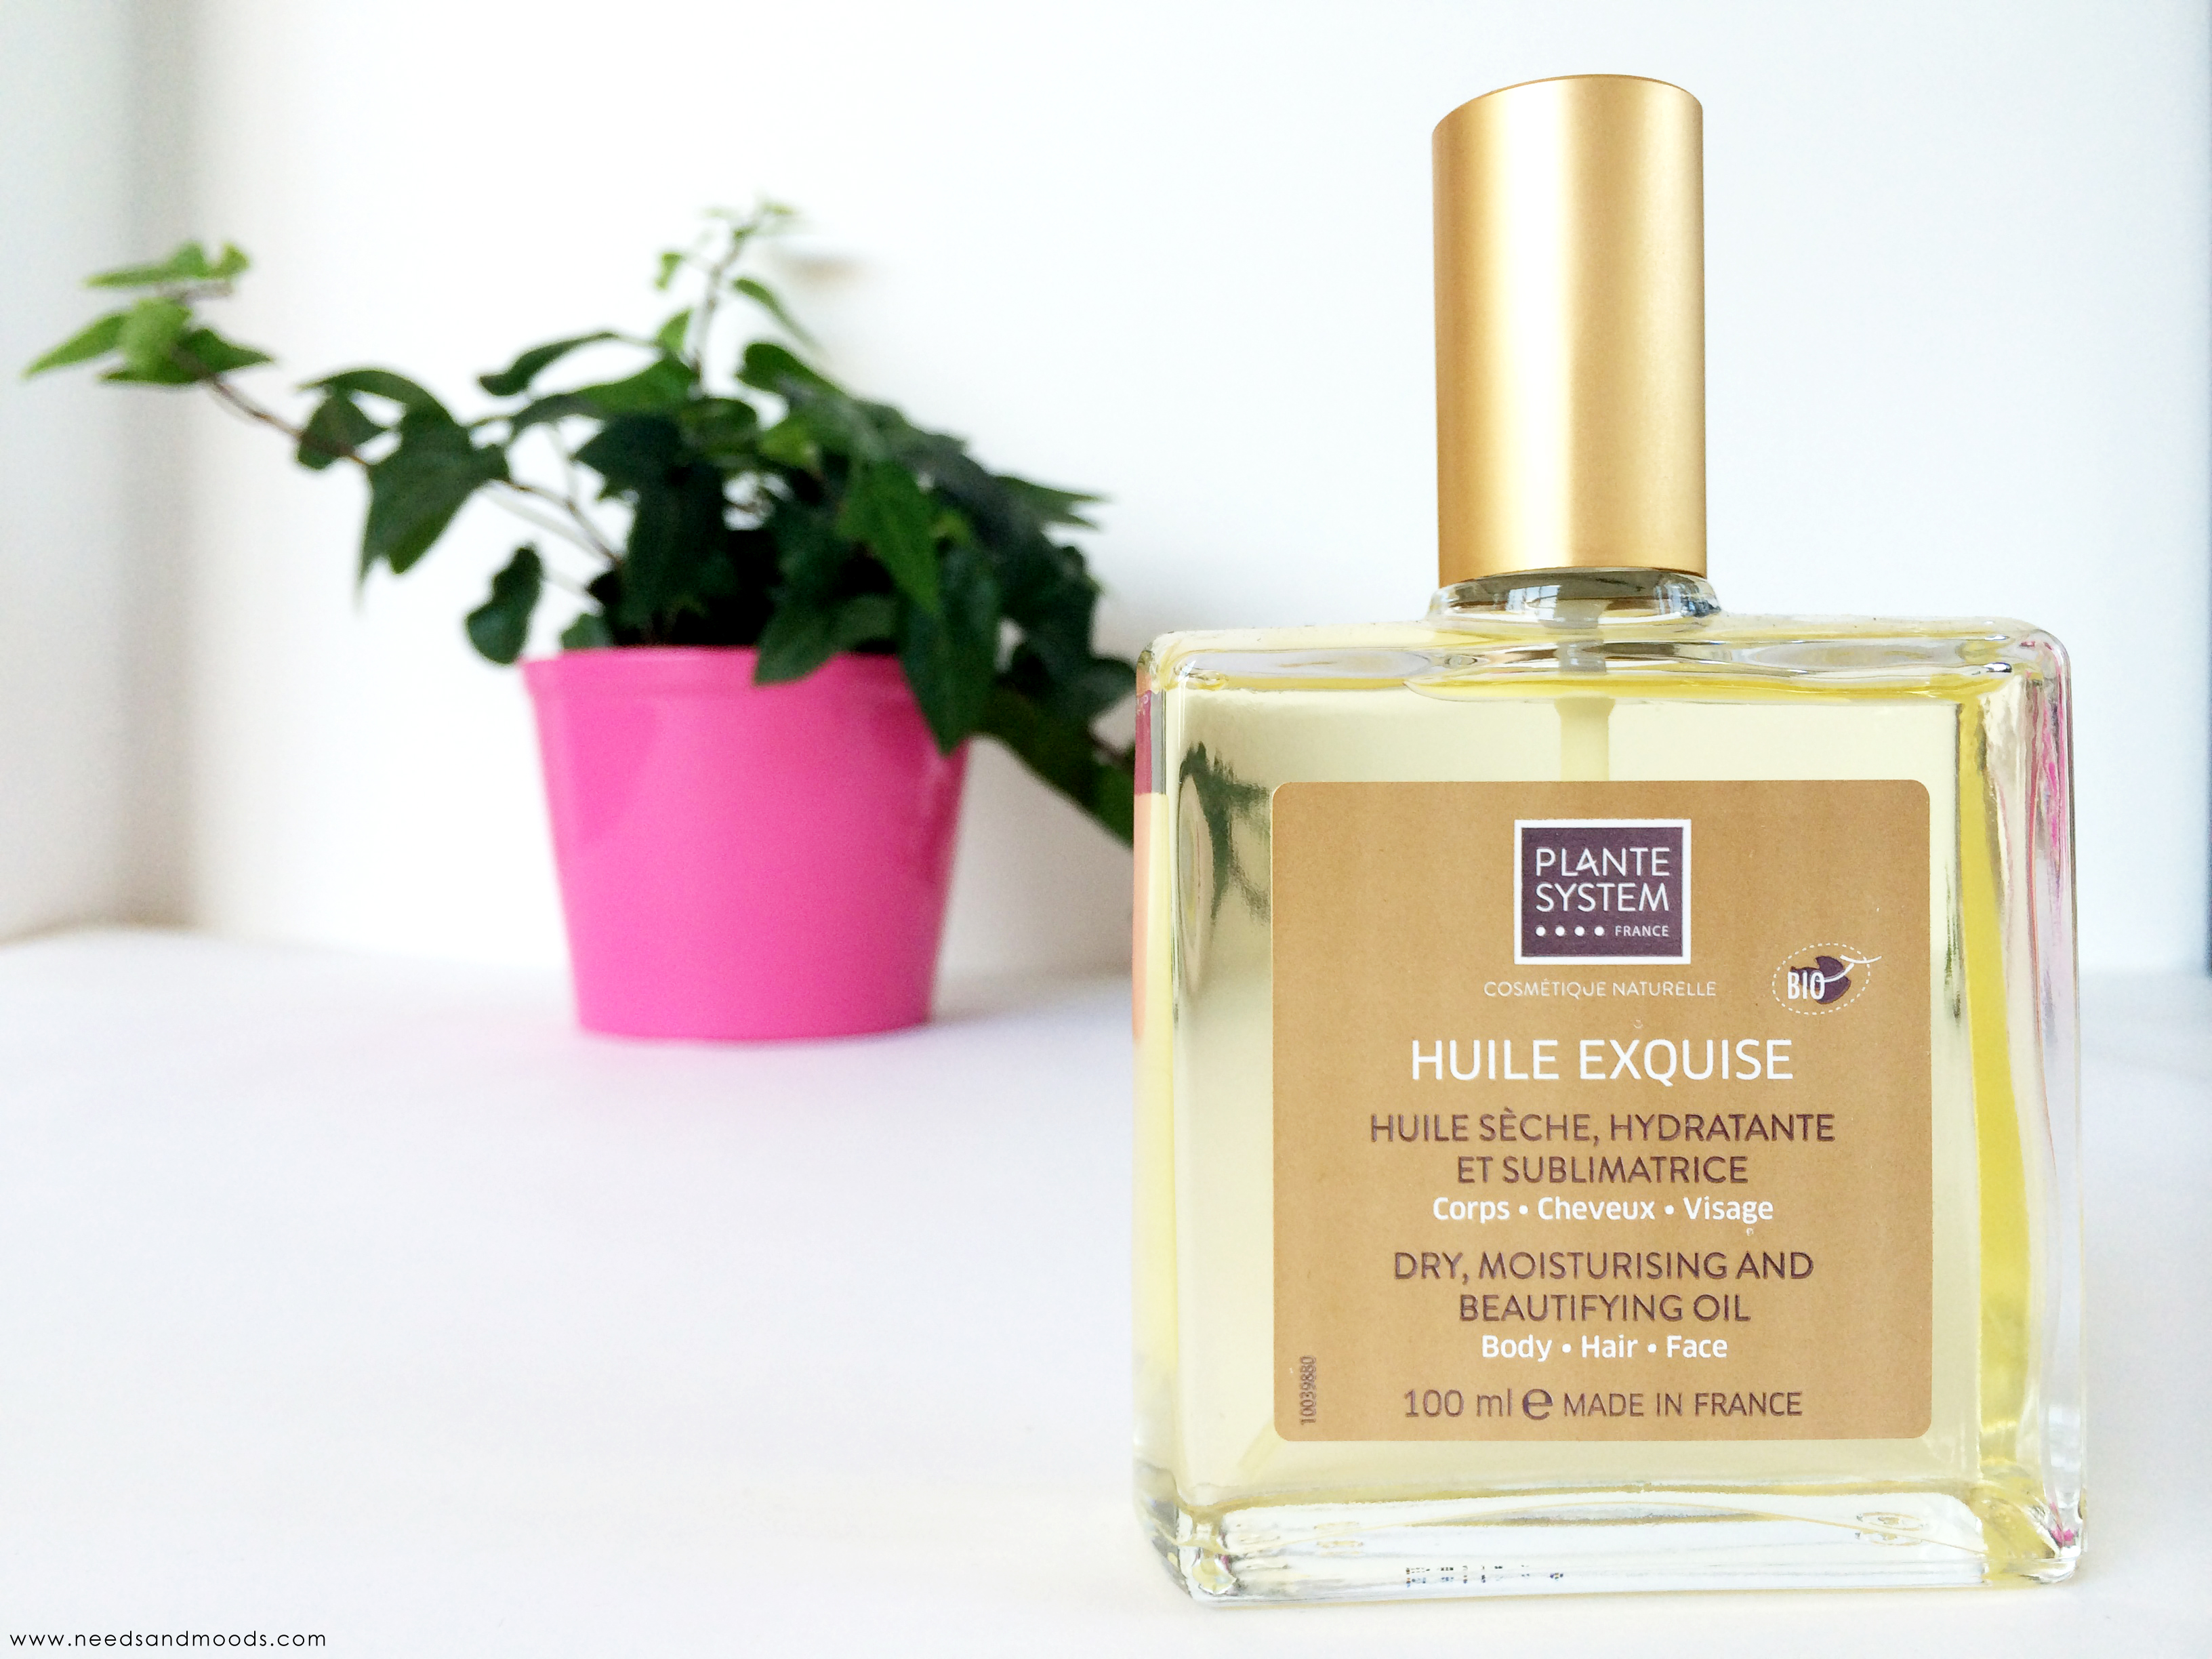 huile exquise plante system review